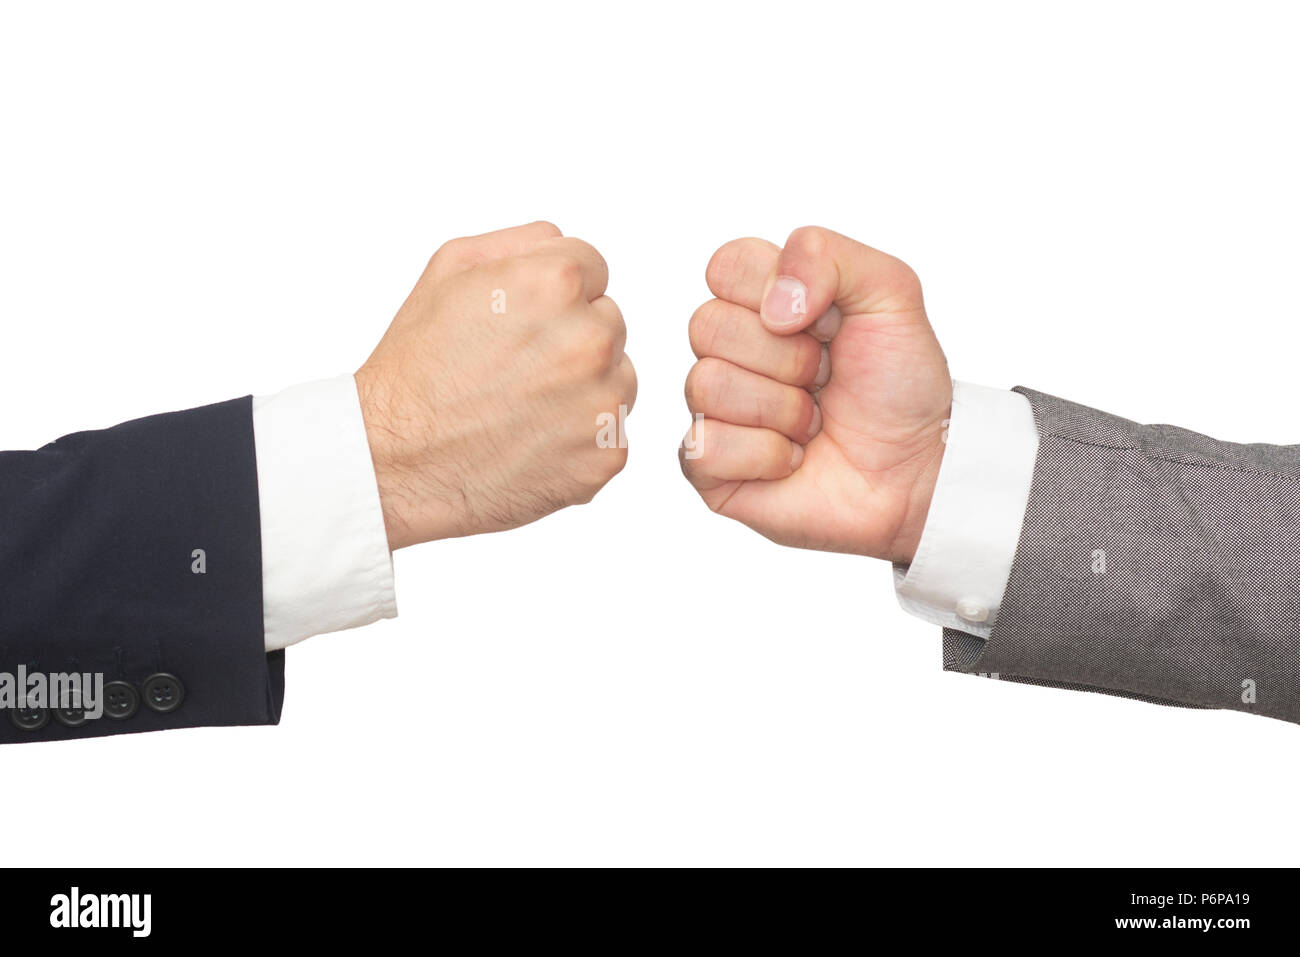 Business relations concept - Stock Image